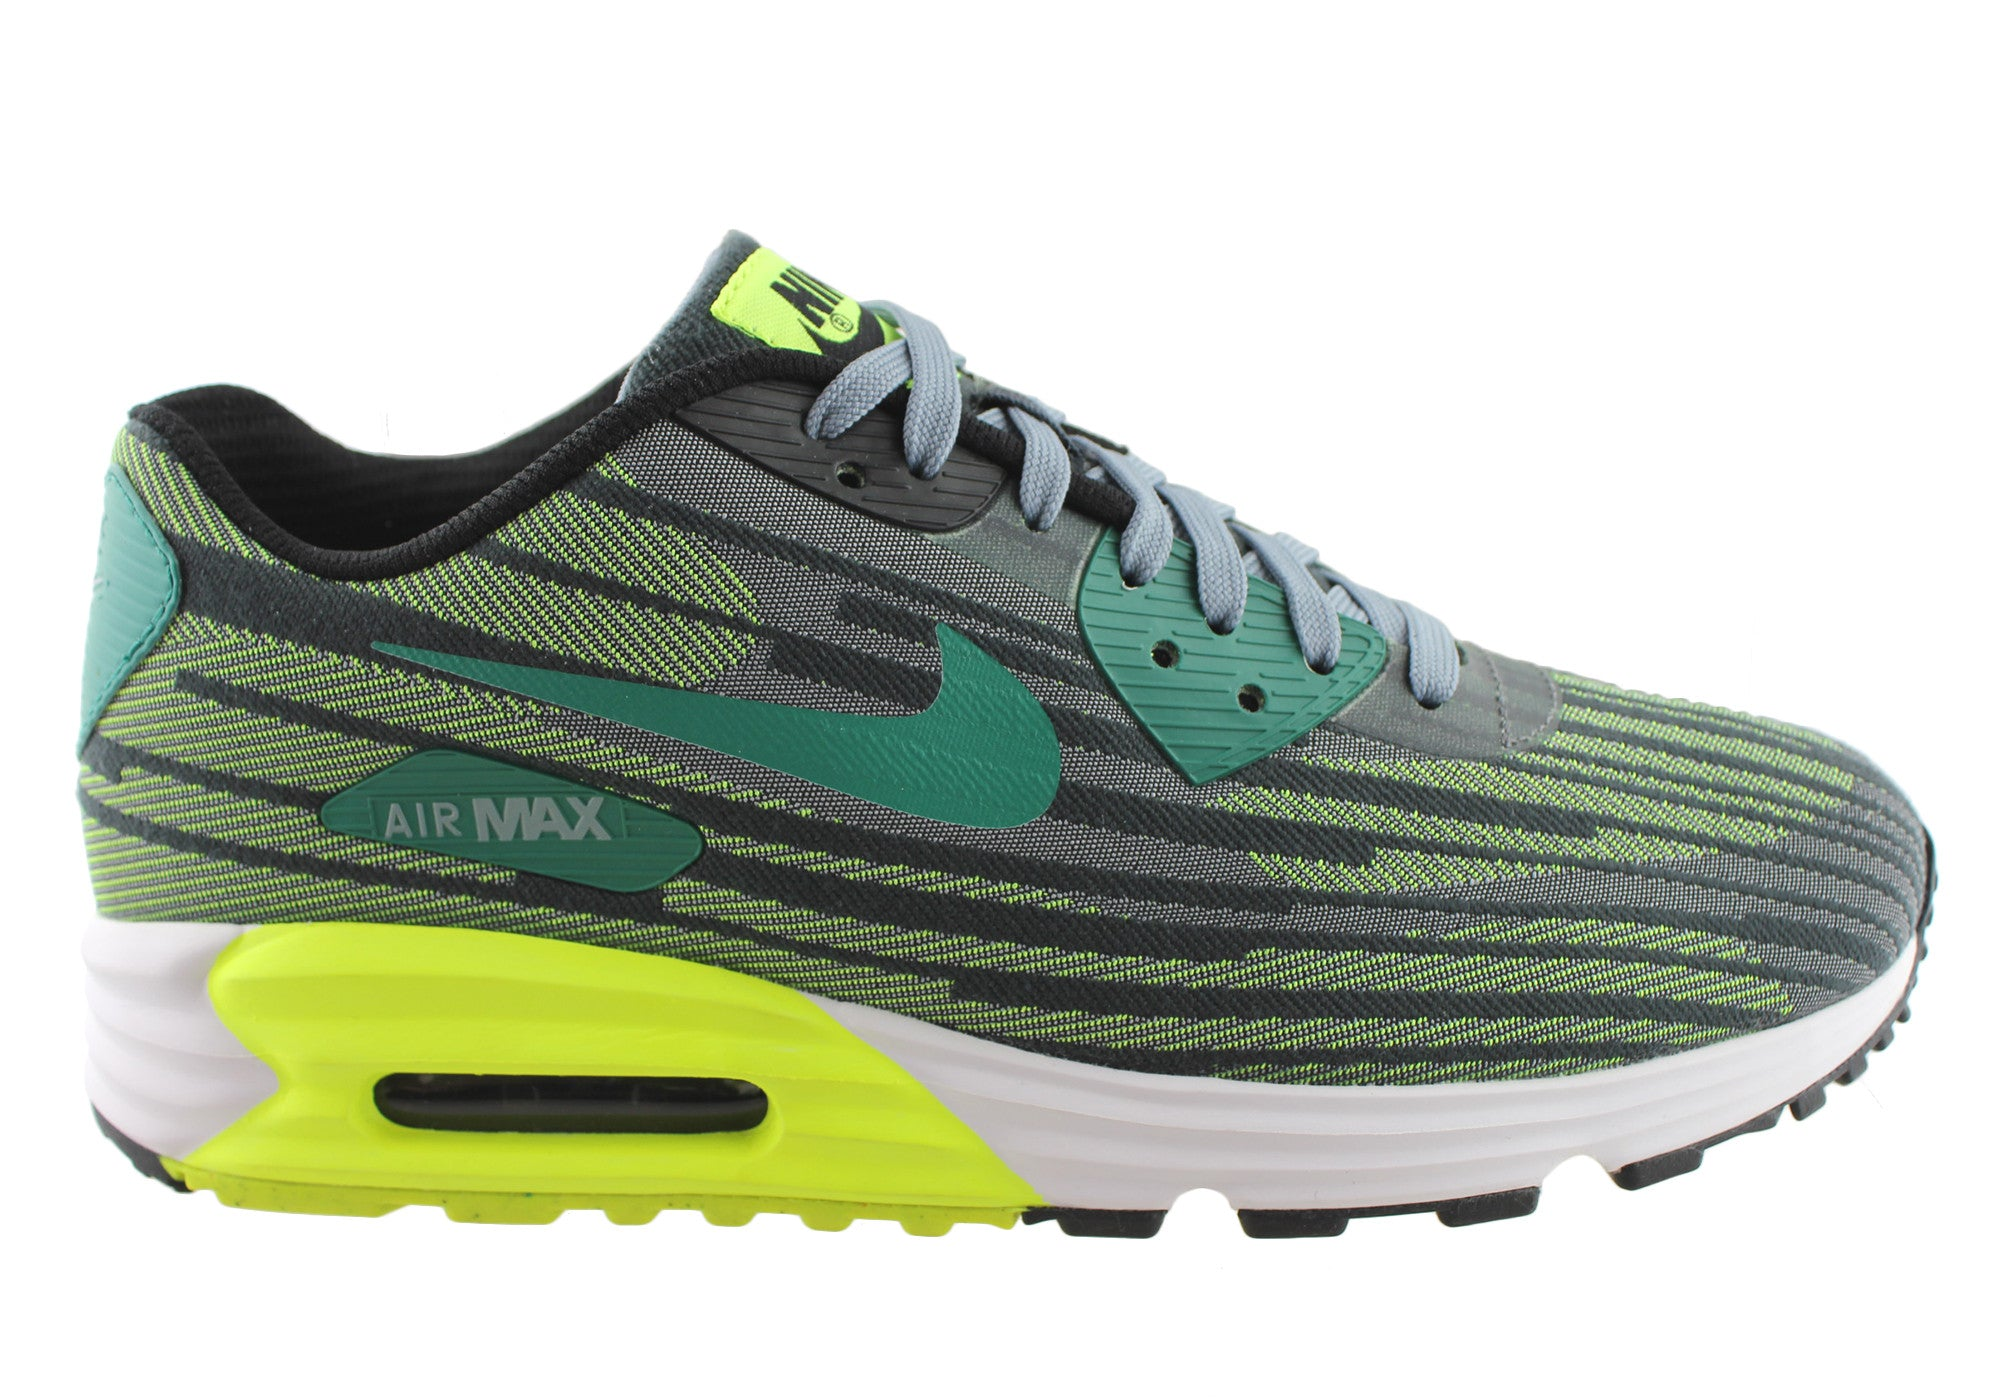 online store 71e0a 4a476 New Mens Nike Air Max Lunar90 Jcrd Premium Cushioned Shoes   eBay